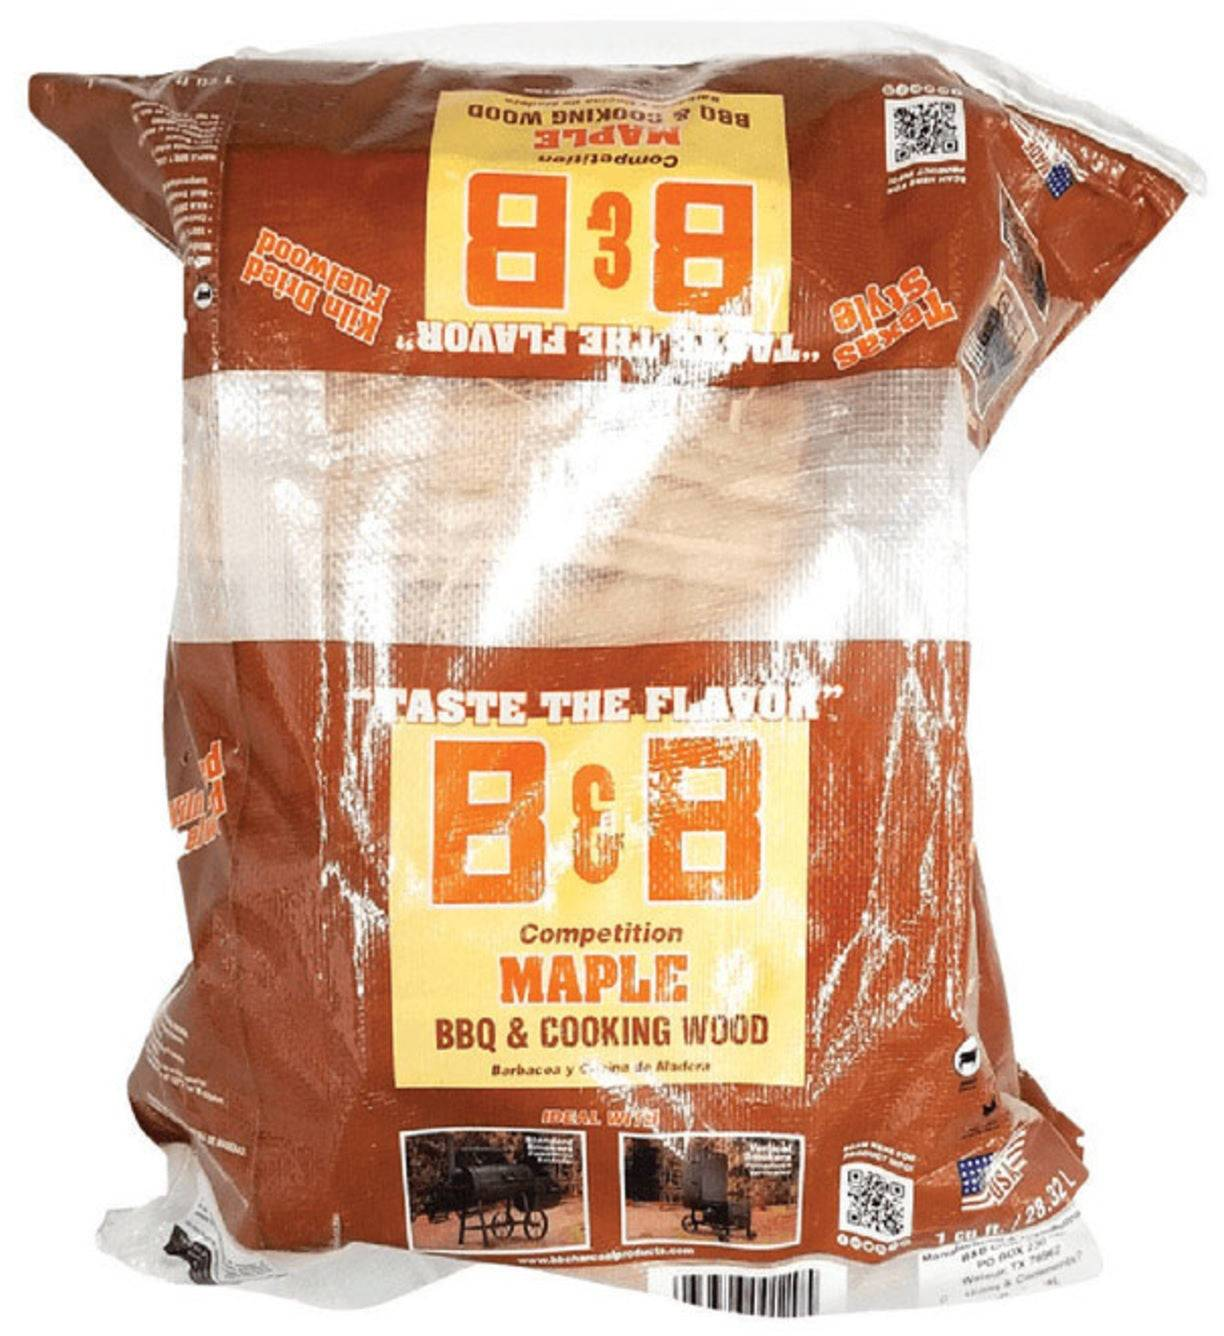 B & B Charcoal 00120 Grill Wood Maple Cooking Logs, 1 Cubic Feet